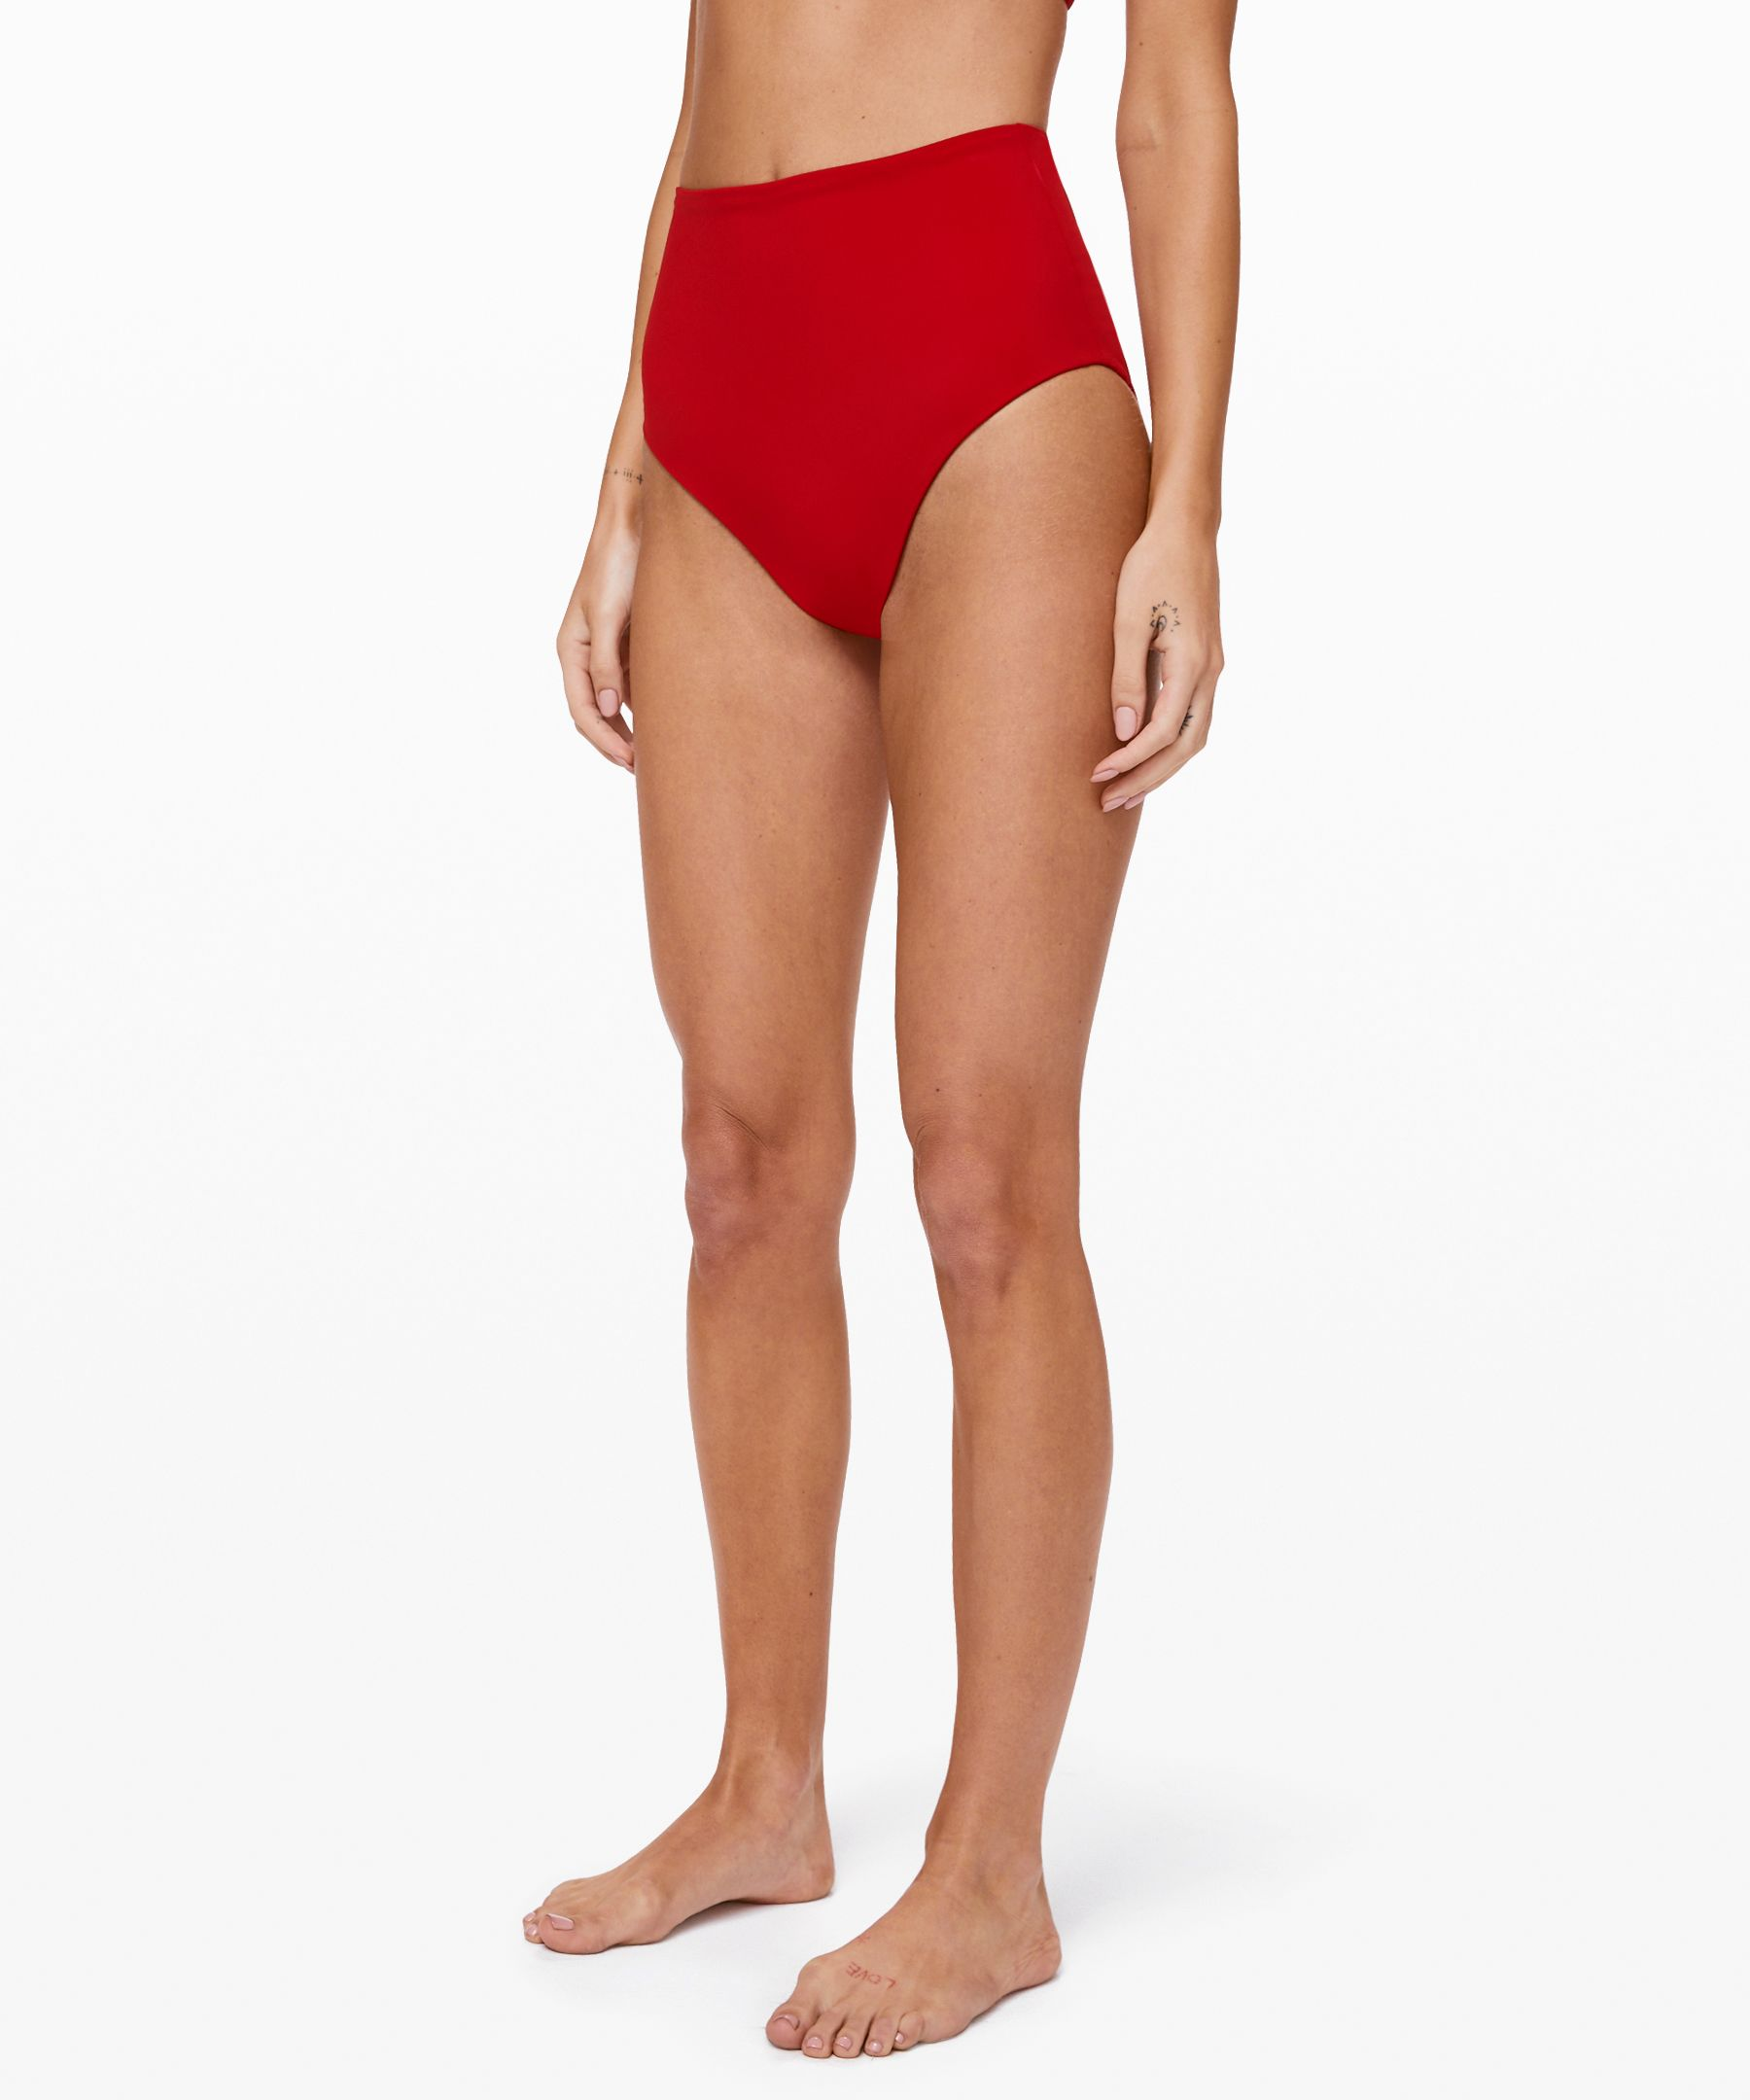 When the beach calls, throw on  these high-rise bottoms with  medium bum coverage and dive in.